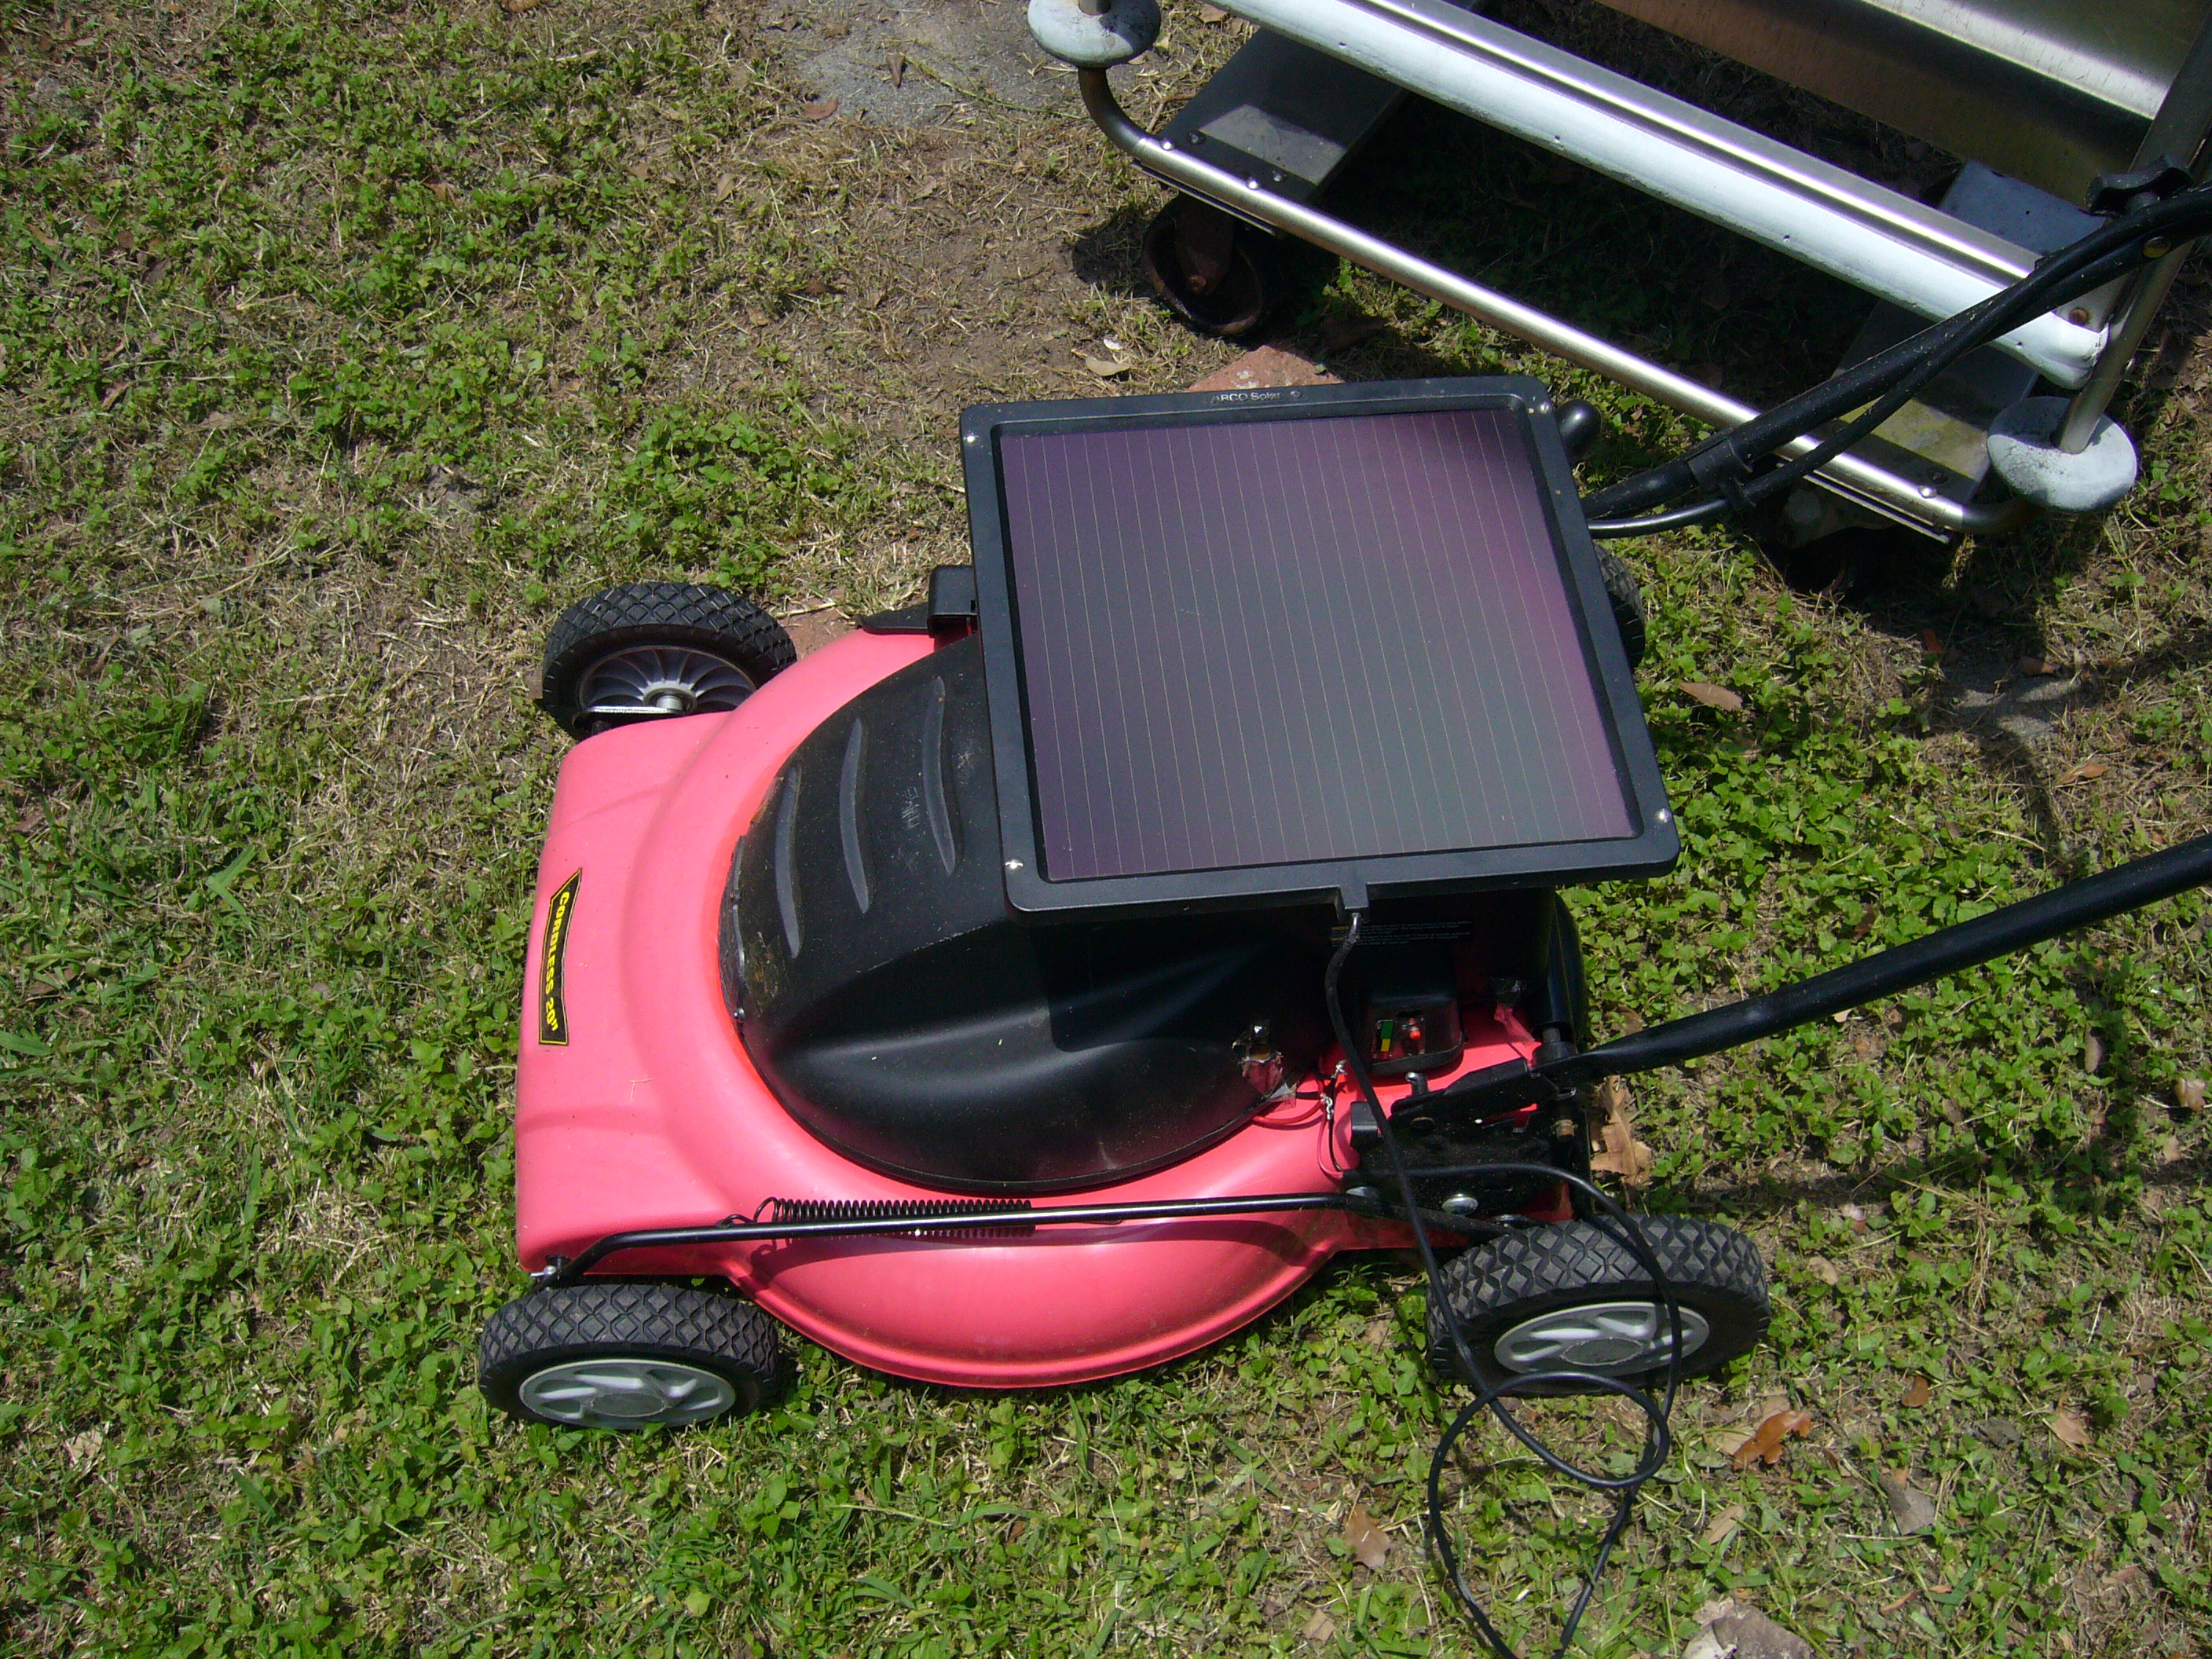 Picture of Solar Lawn Mower